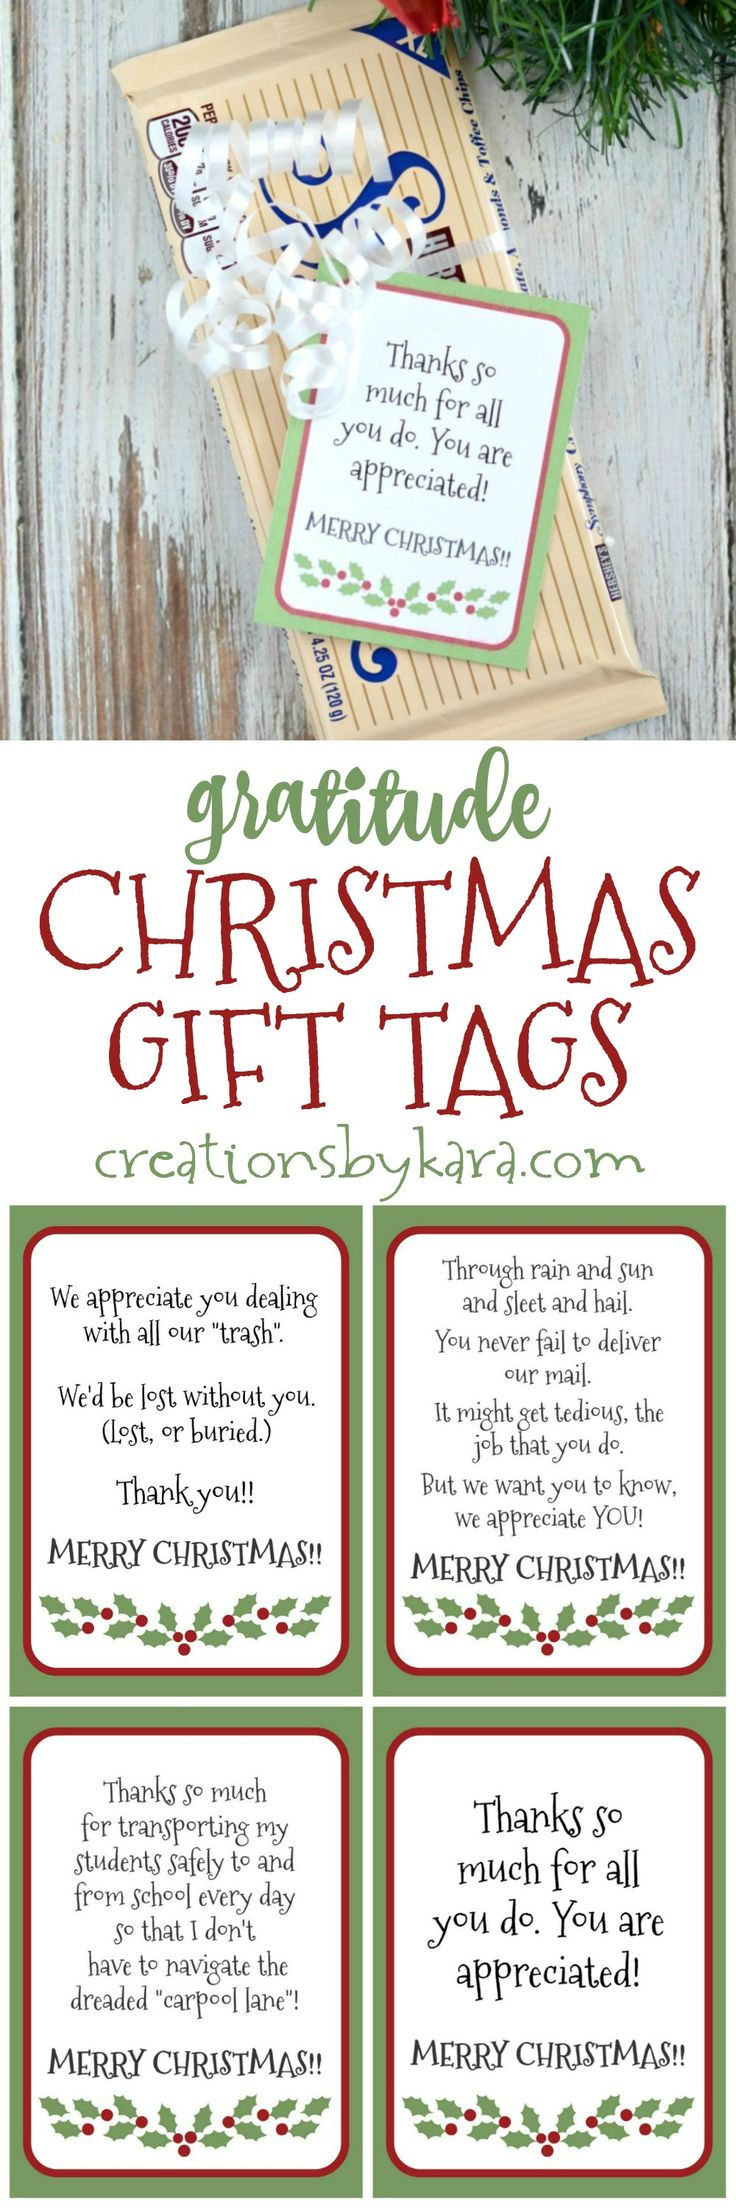 Free printable gratitude Christmas Gift Tags - show appreciation for people who are often neglected during the holiday season!